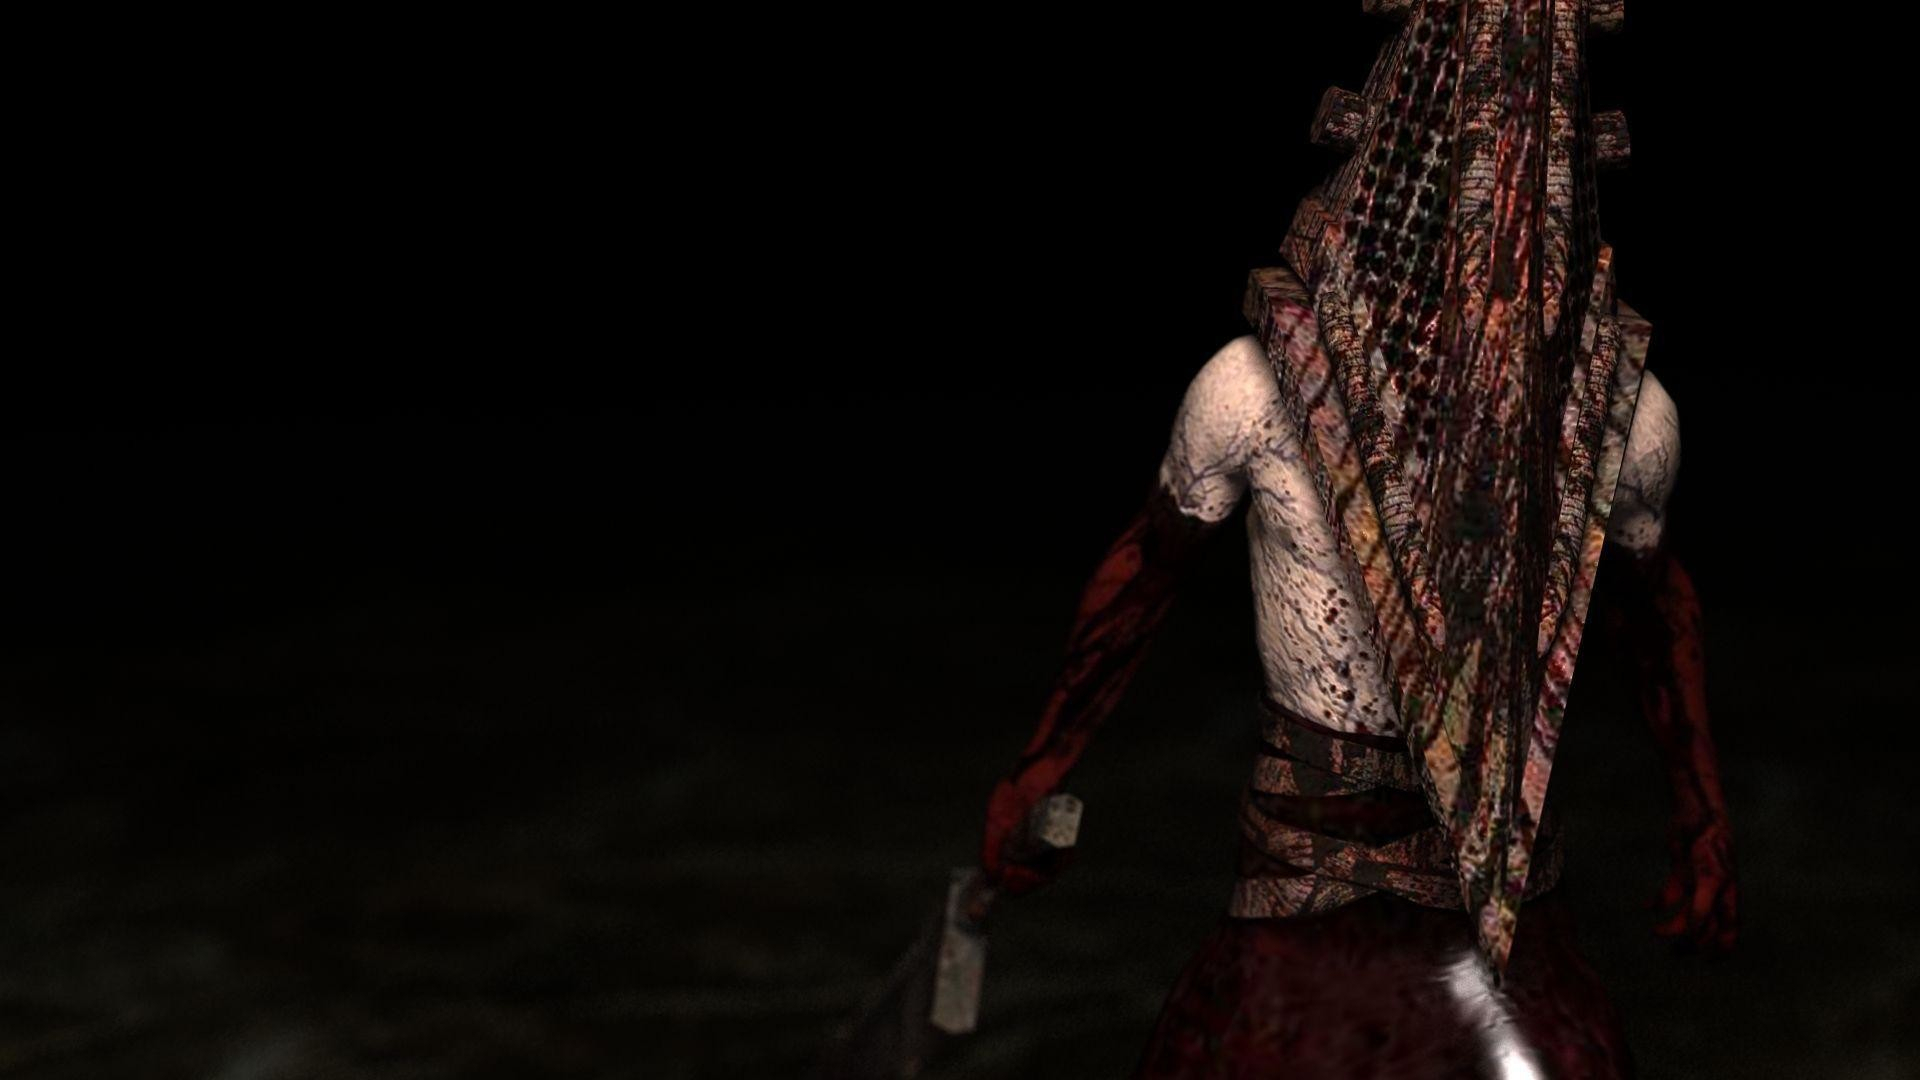 60+ pyramid head wallpapers on wallpaperplay